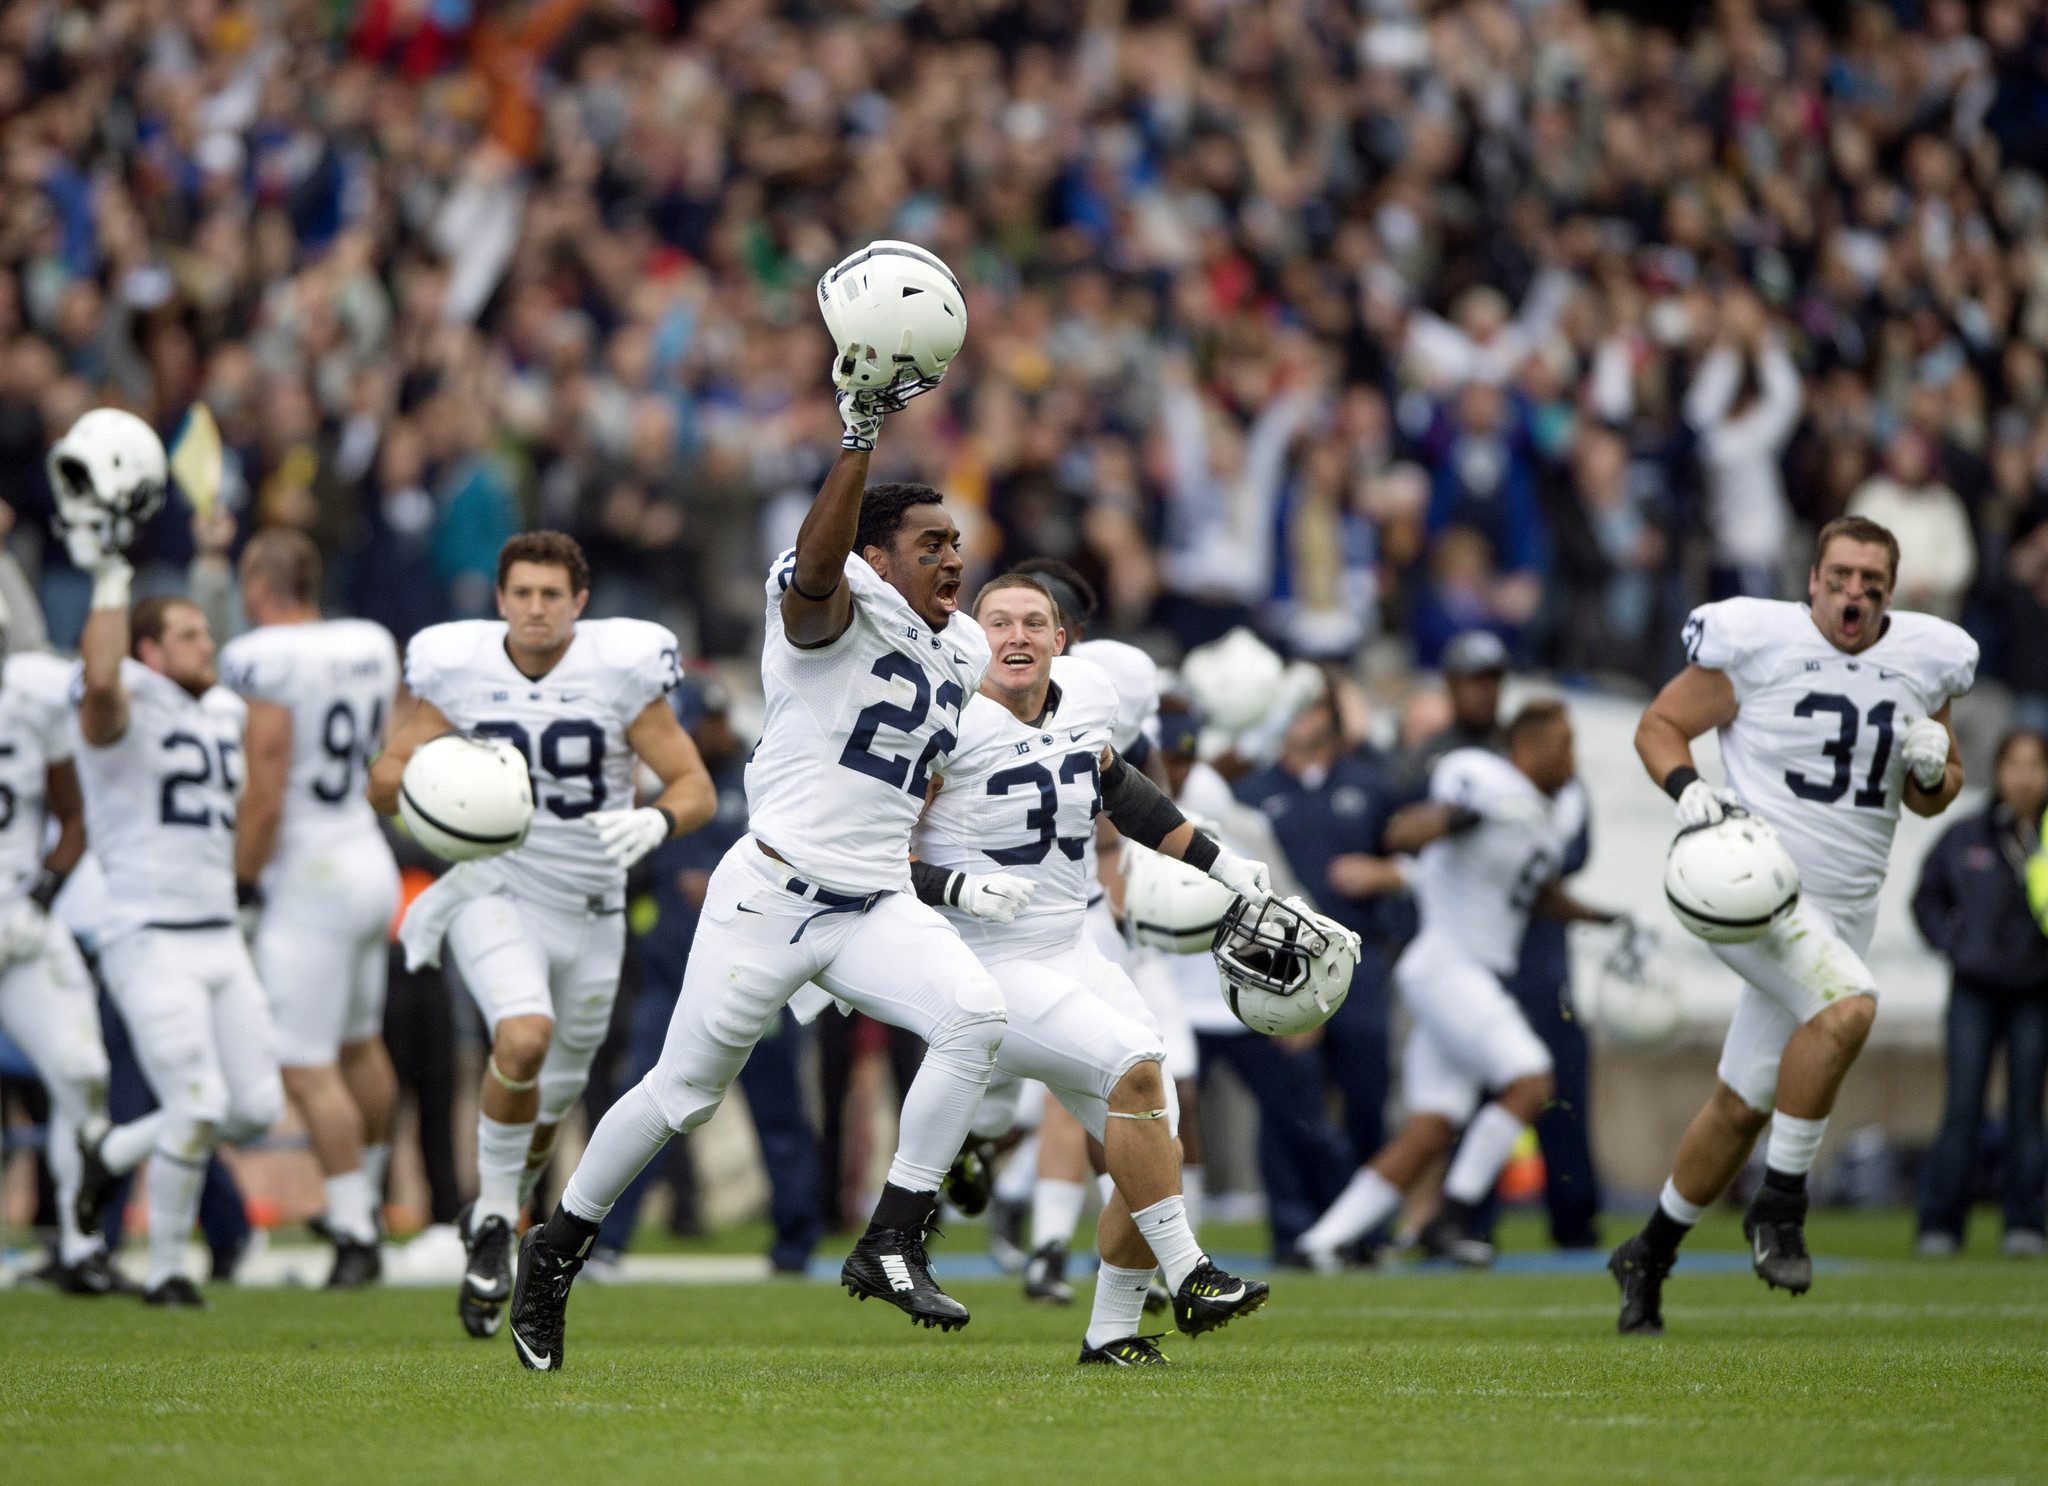 penn state players